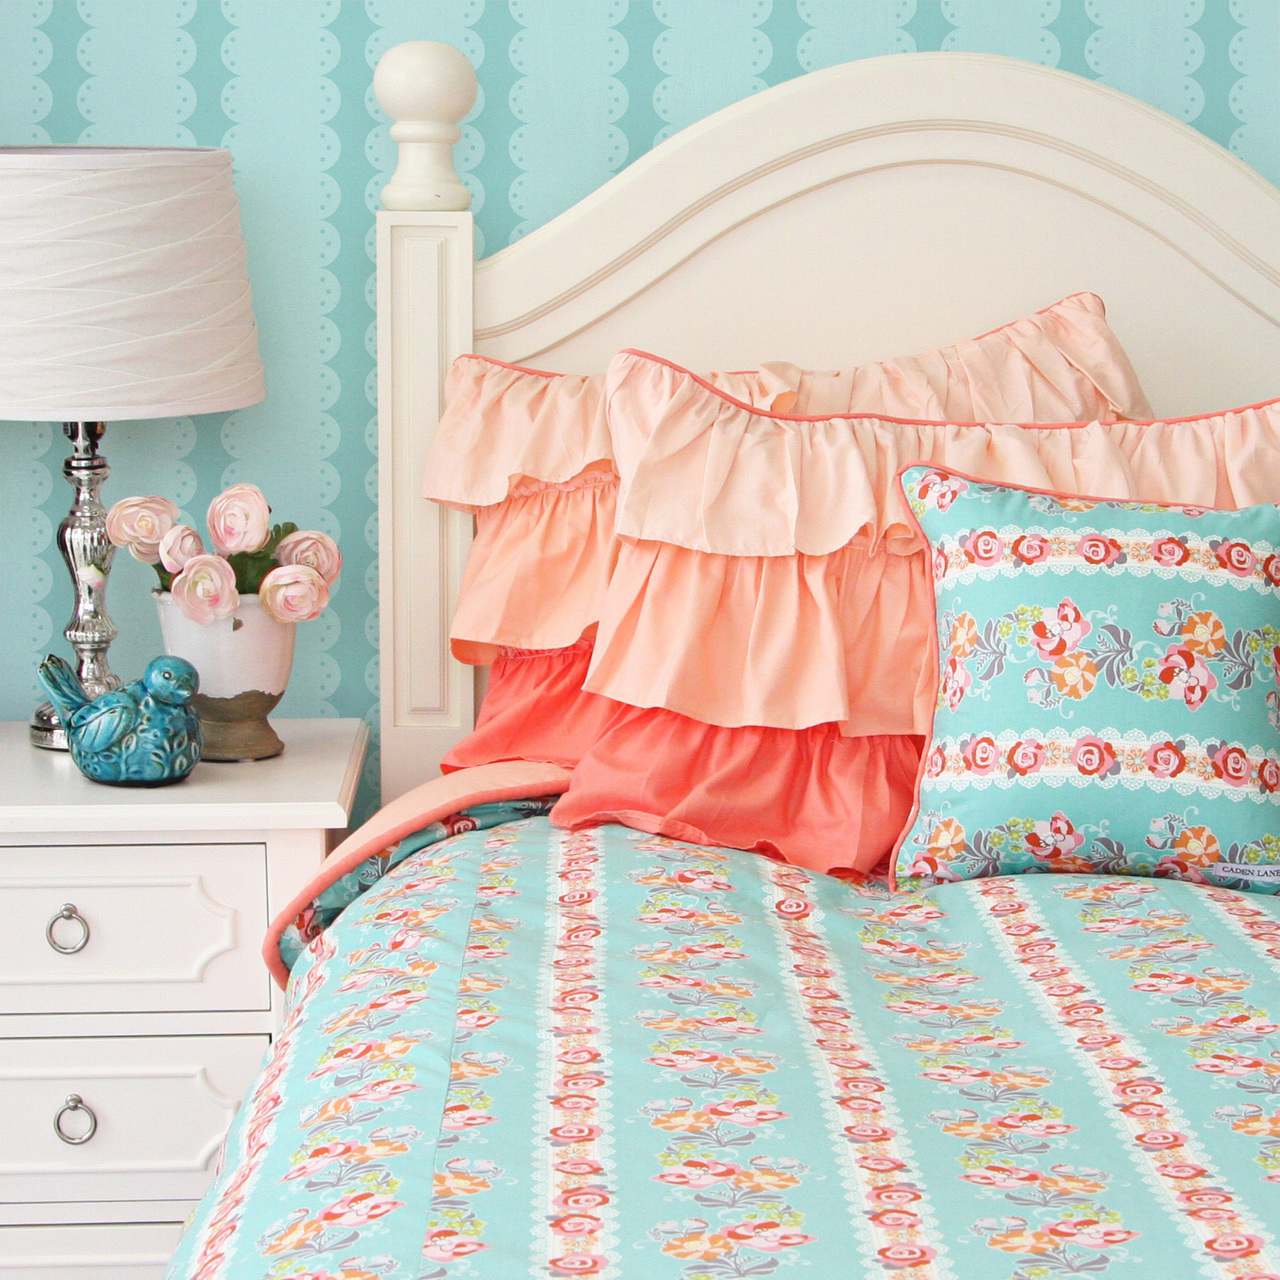 lovely cold turquoise natori bedding and sidetable